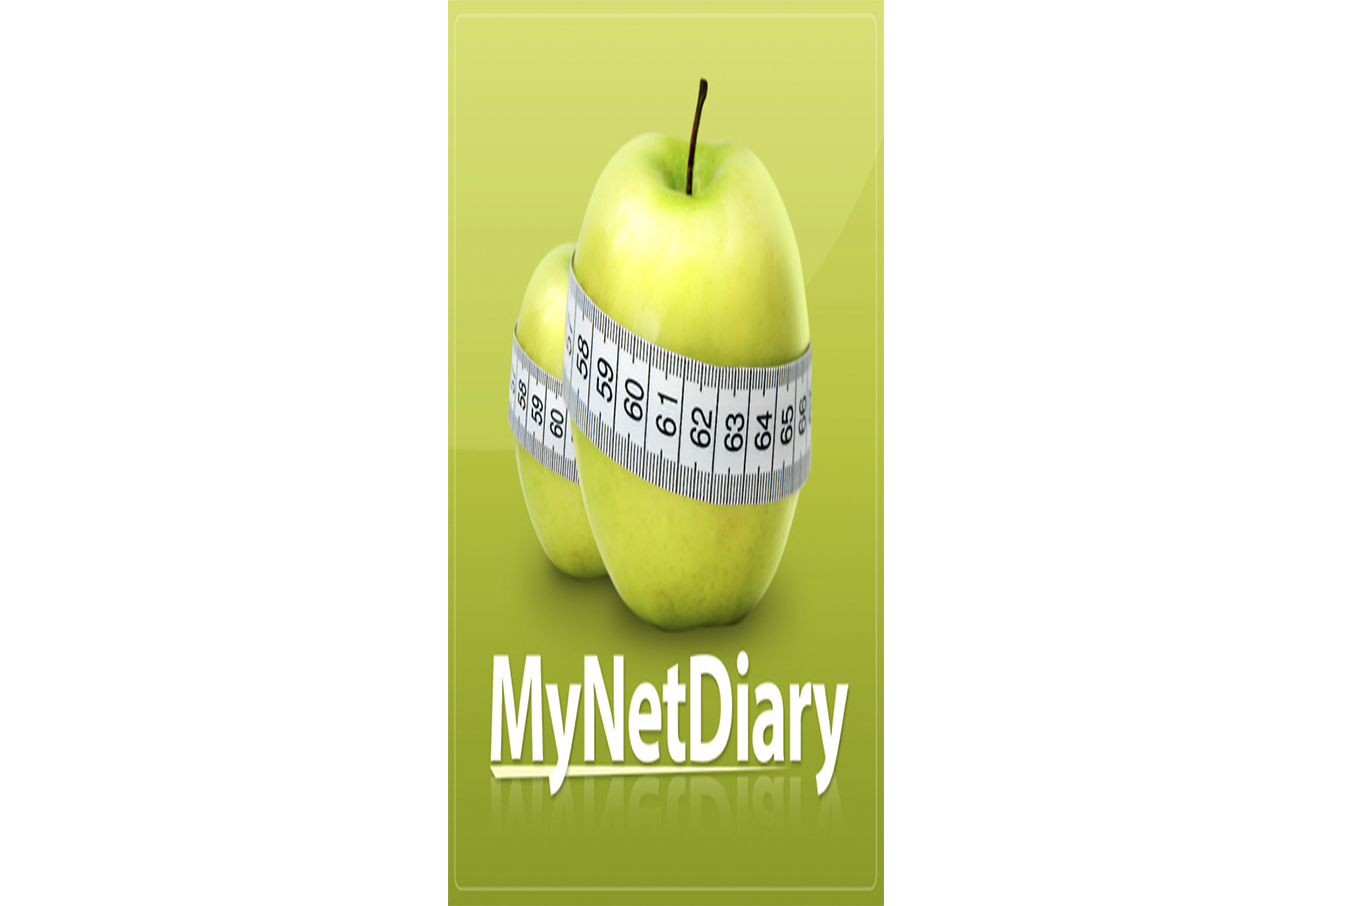 LATEST NEWS: MyNetDiary Adds Diabetes Tracking Service to Its High-Performing Lineup of Weight Management Tools